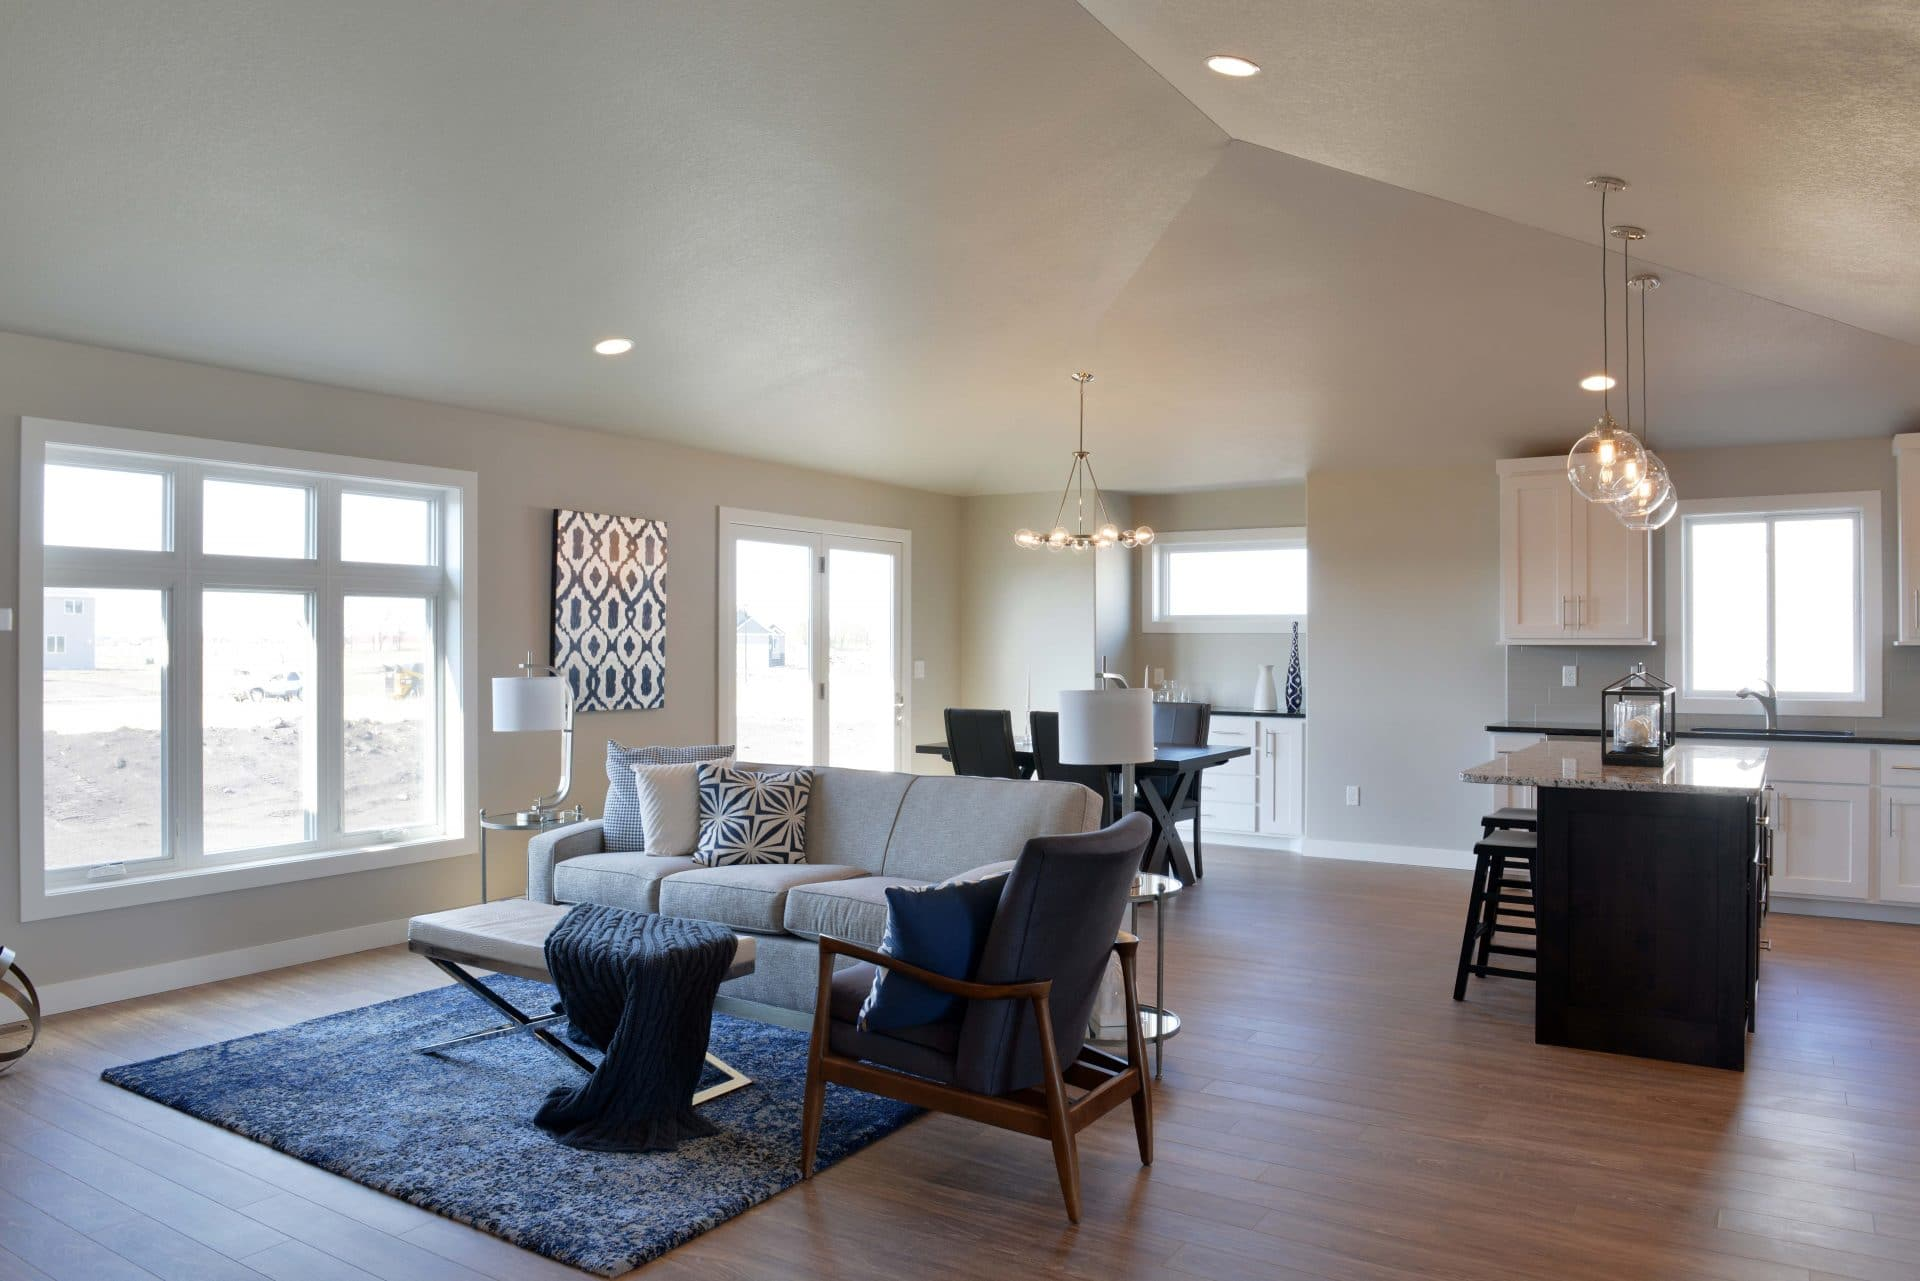 3 Tips For Decorating A House With An Open Floor Plan